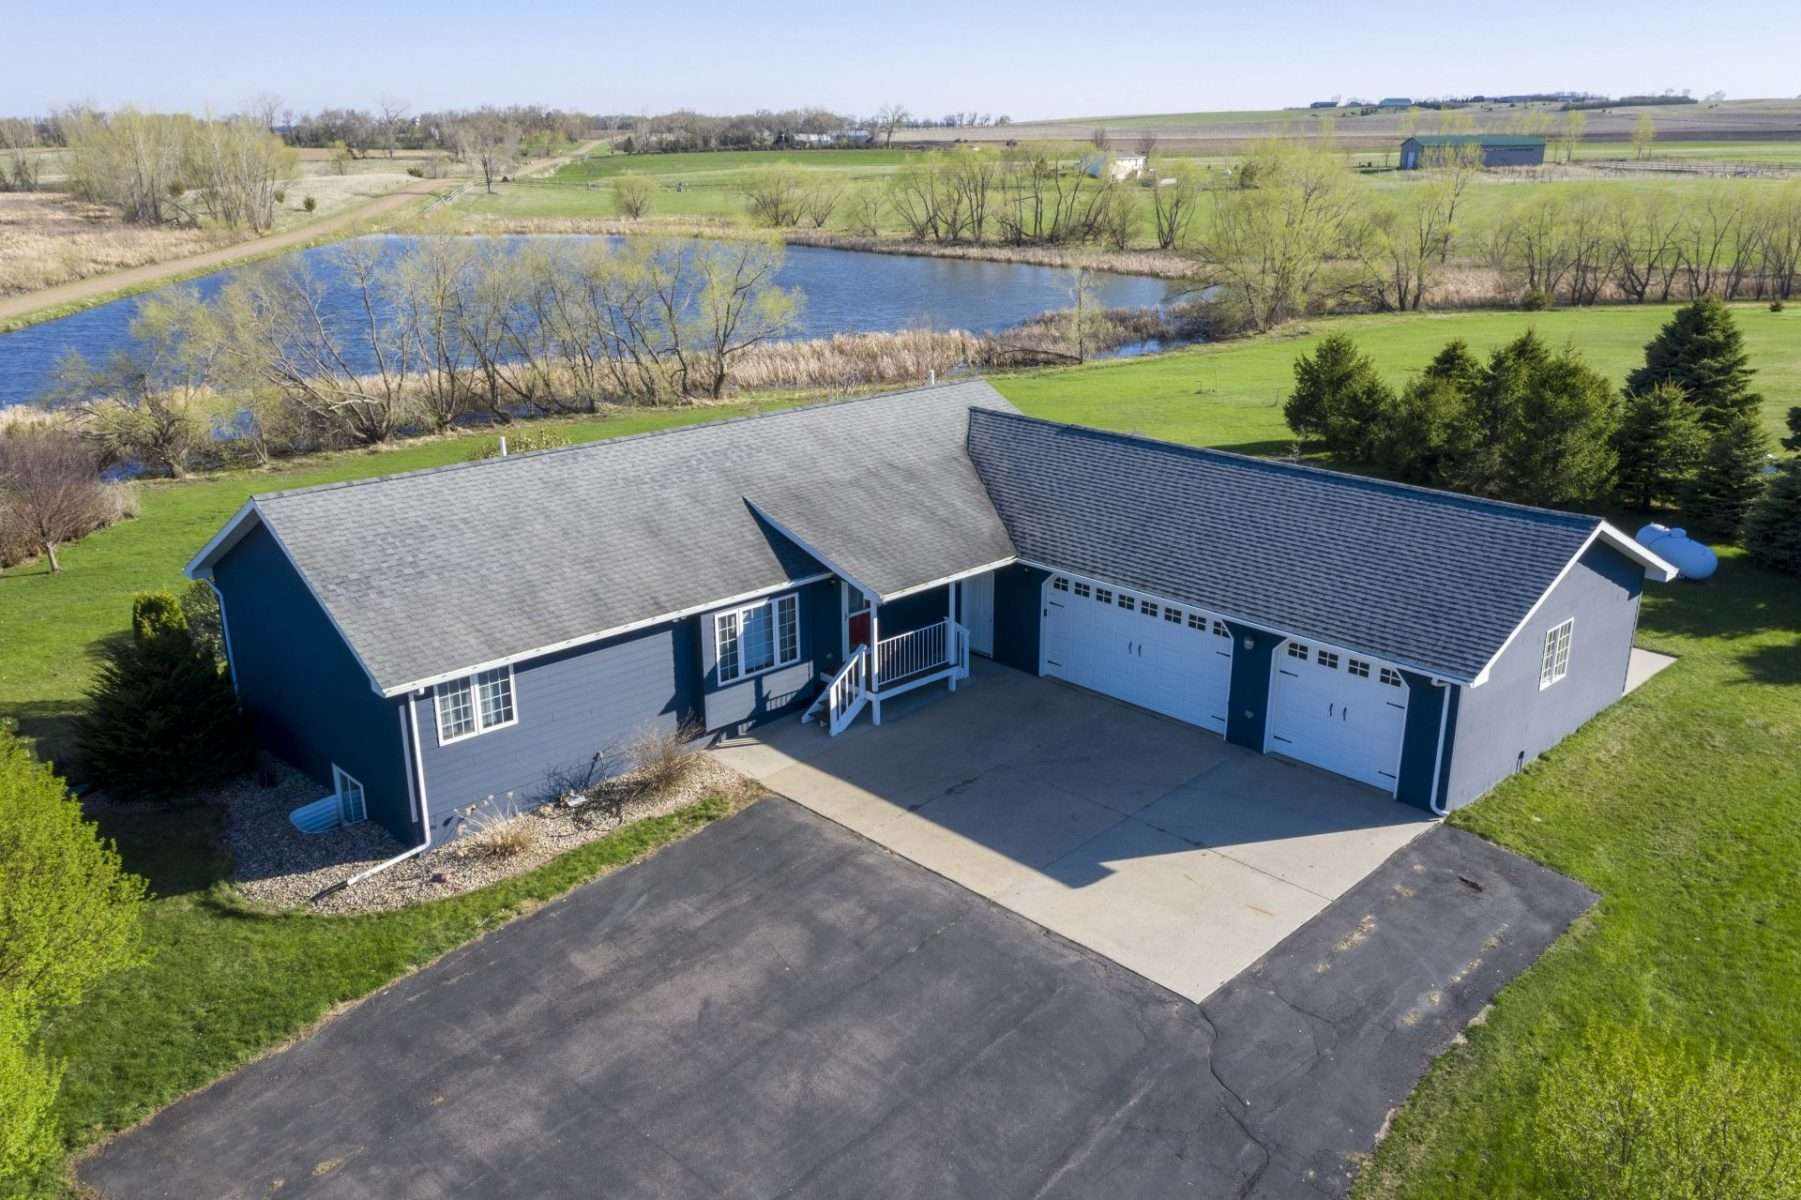 45791 237th St. - Madison, SD  57042